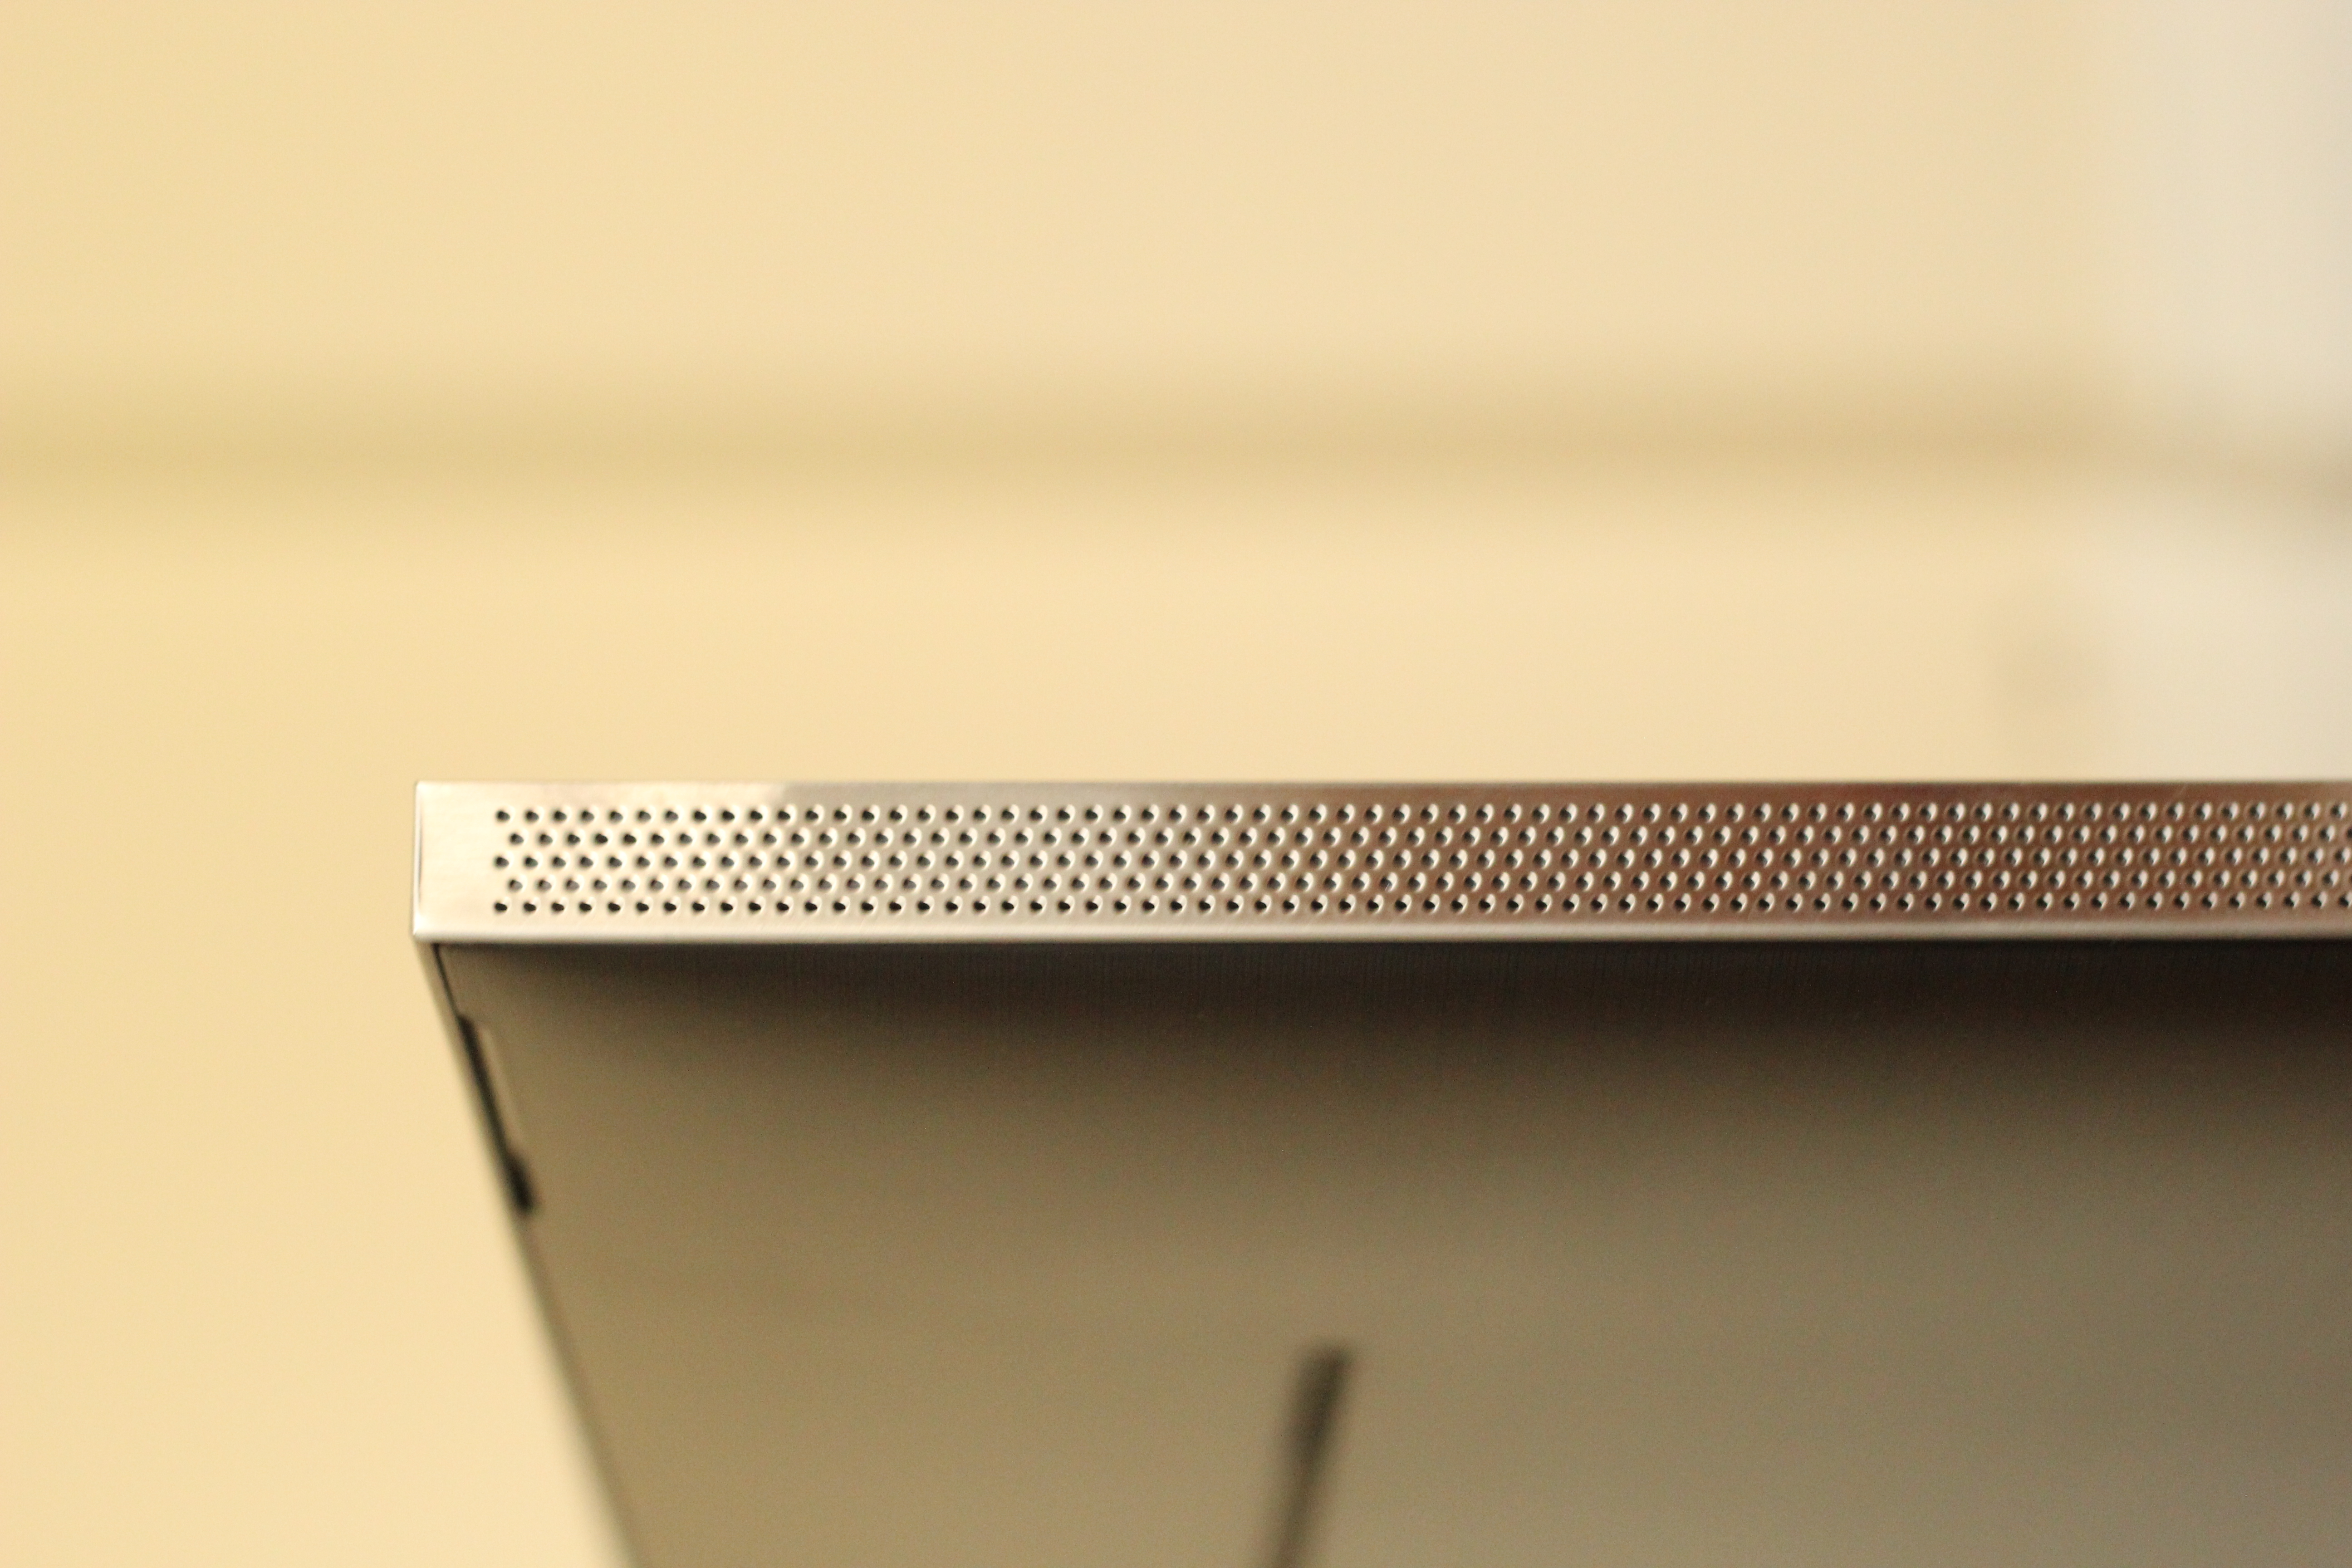 A side view of the Q900TS QLED 8K TV